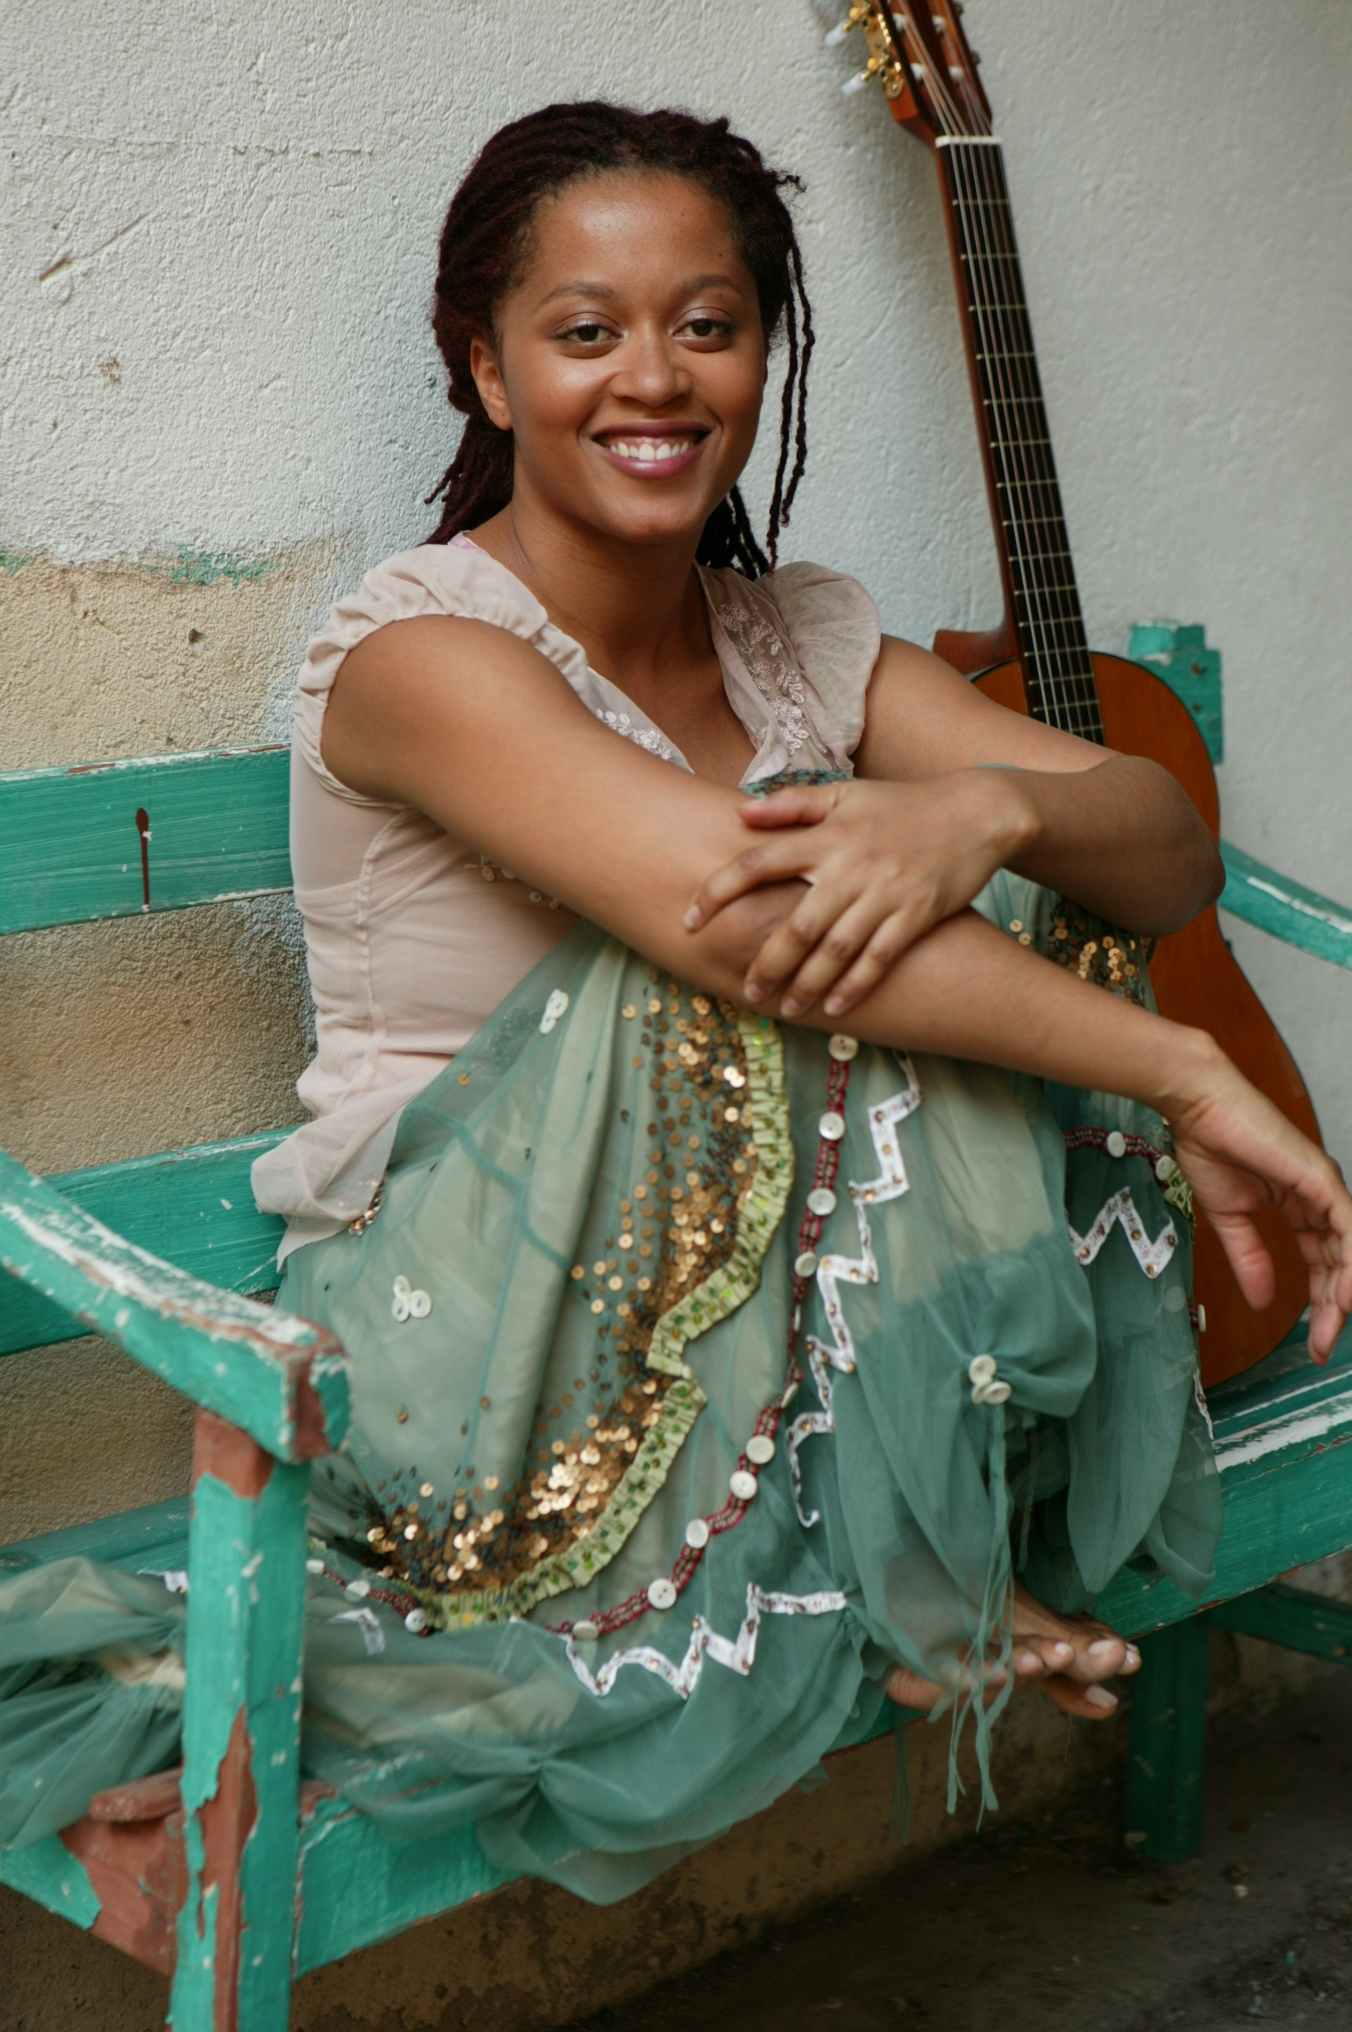 Beautiful And Talented Is Sara Tavares The Face Of African European Music